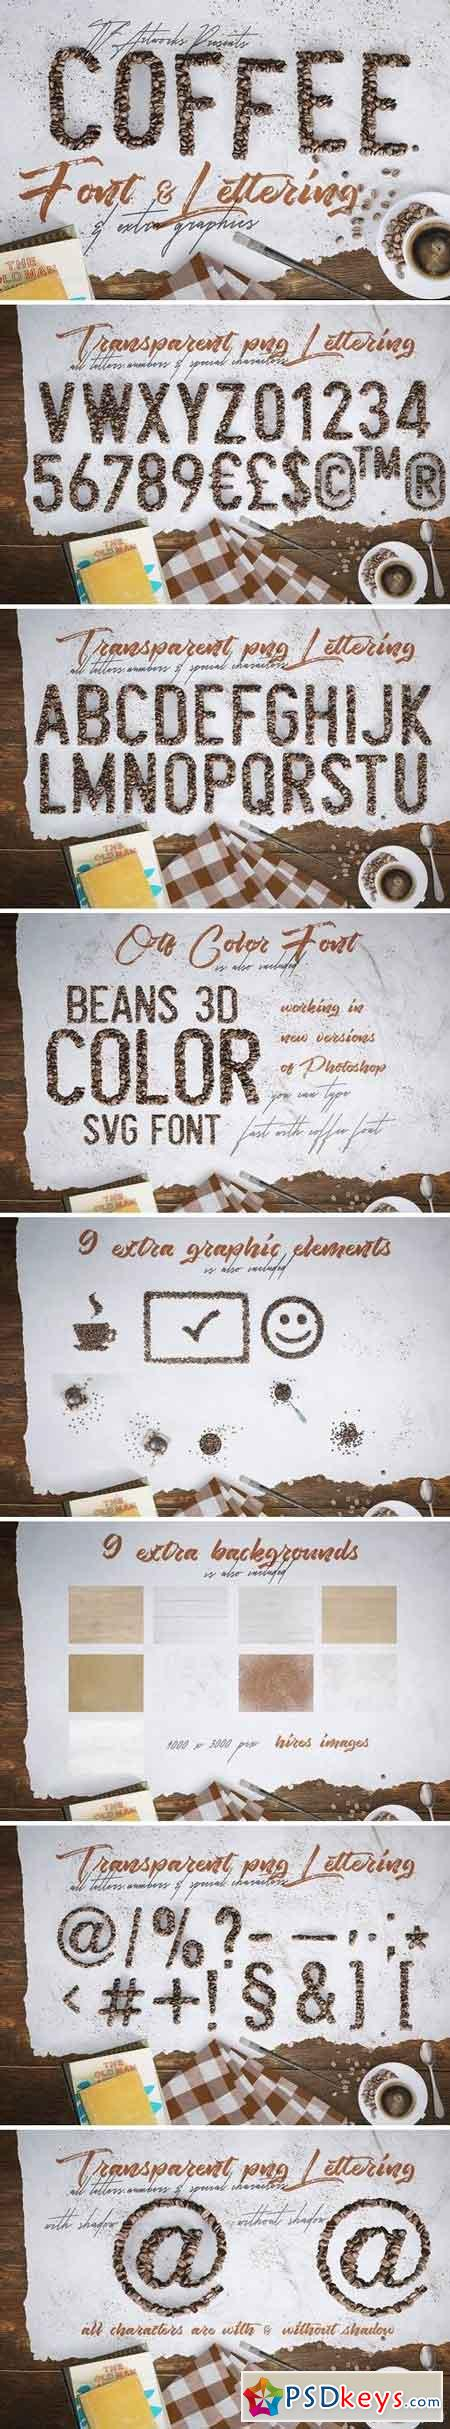 Coffee Beans - Font & Lettering